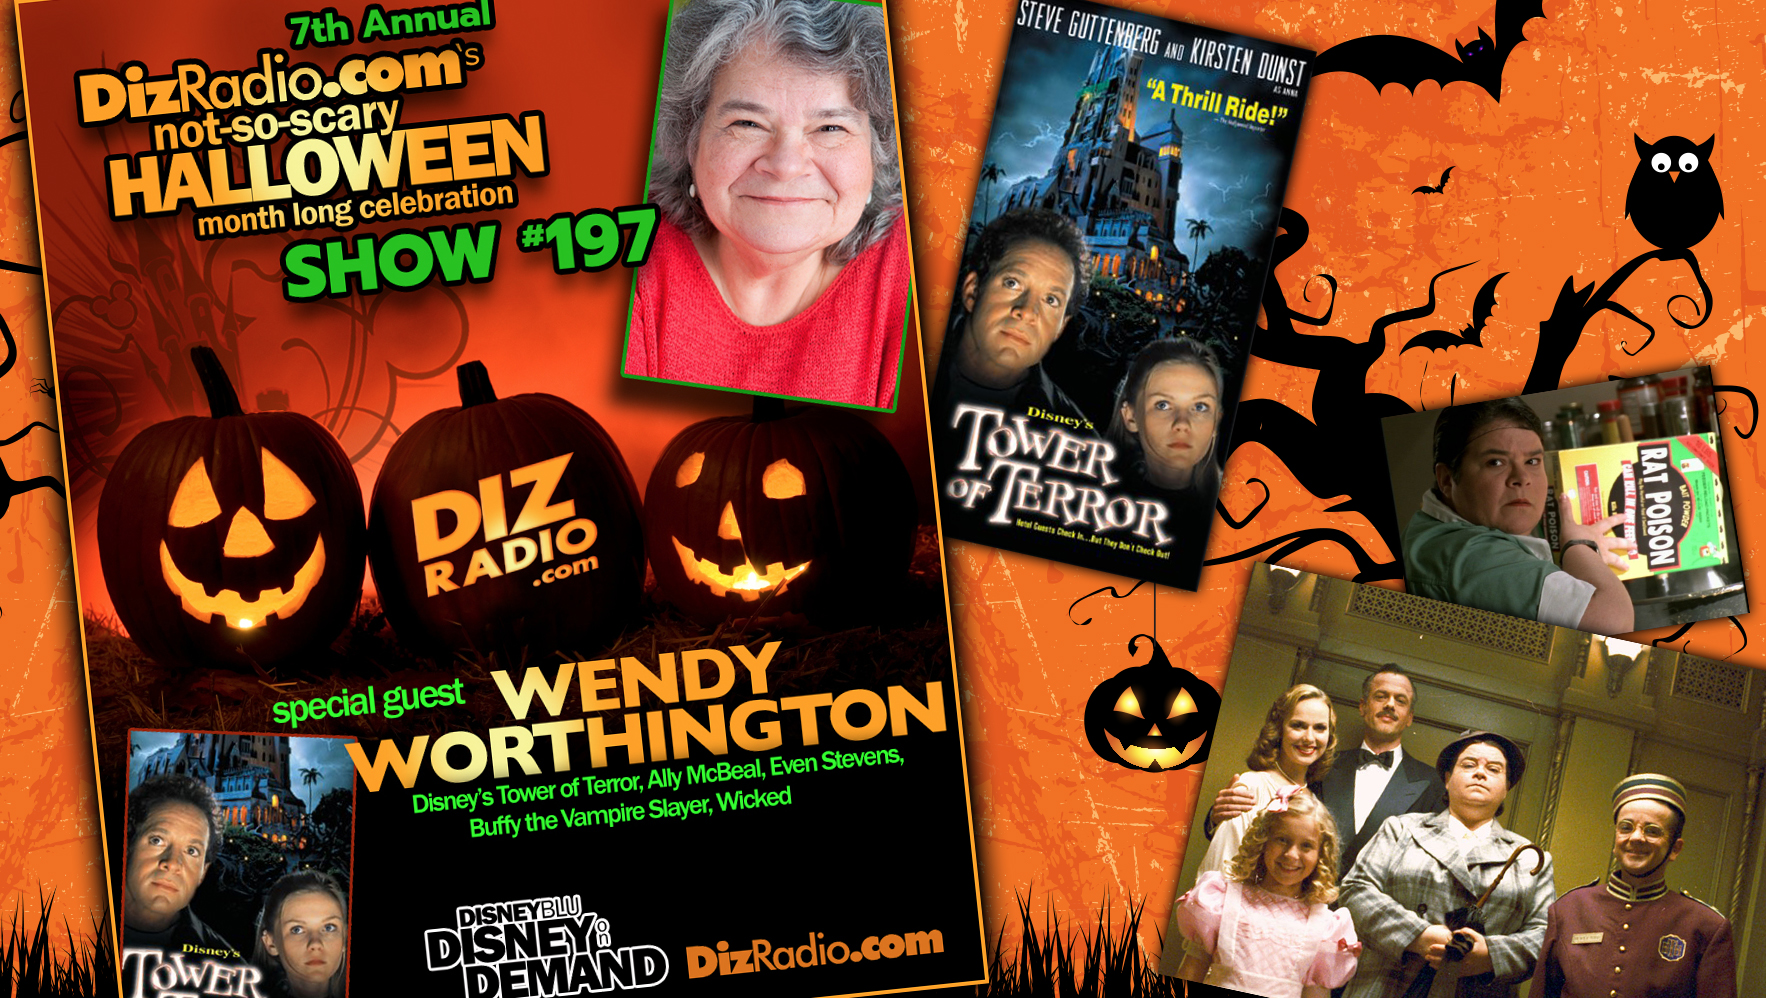 DisneyBlu's DizRadio Disney on Demand Podcast Show #197 w/ Special Guest WENDY WORTHINGTON (Disney's Tower of Terror, Buffy the Vampire Slayer, Even Stevens, Ally McBeal, Wicked)